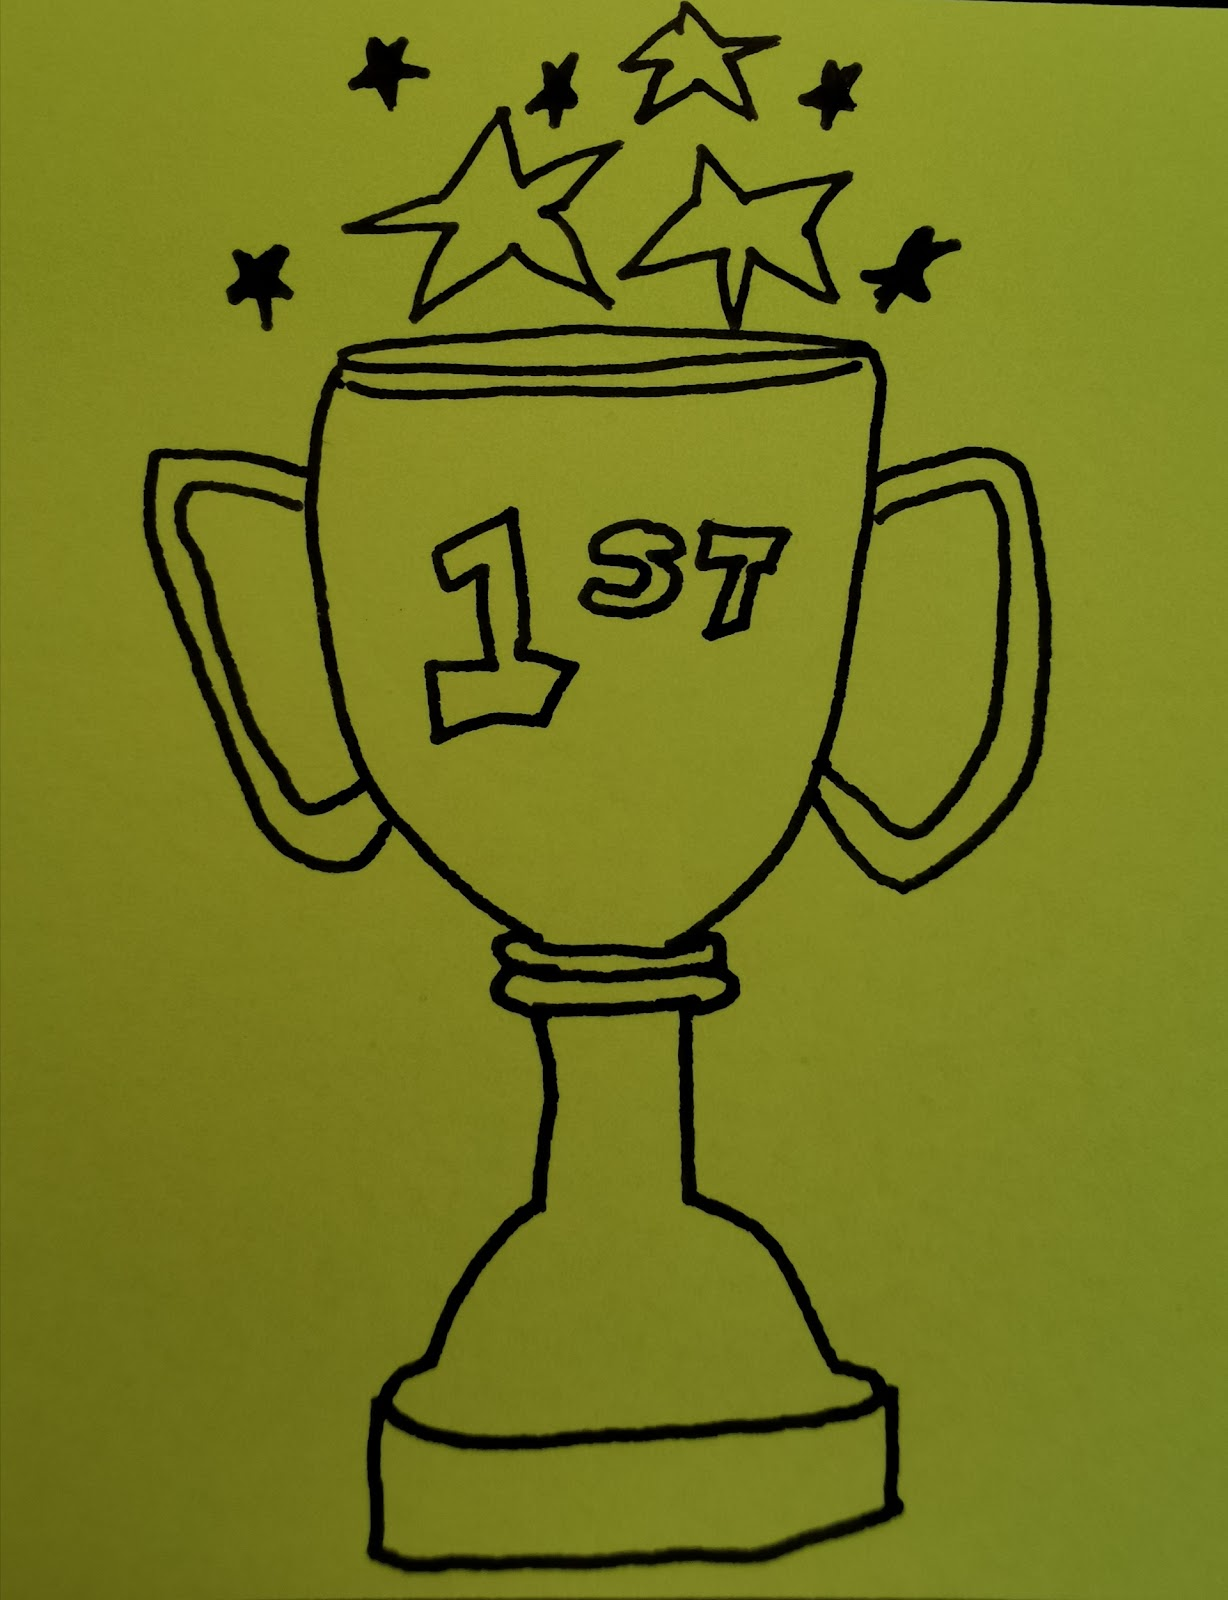 drawing of a trophy with stars coming out of the top